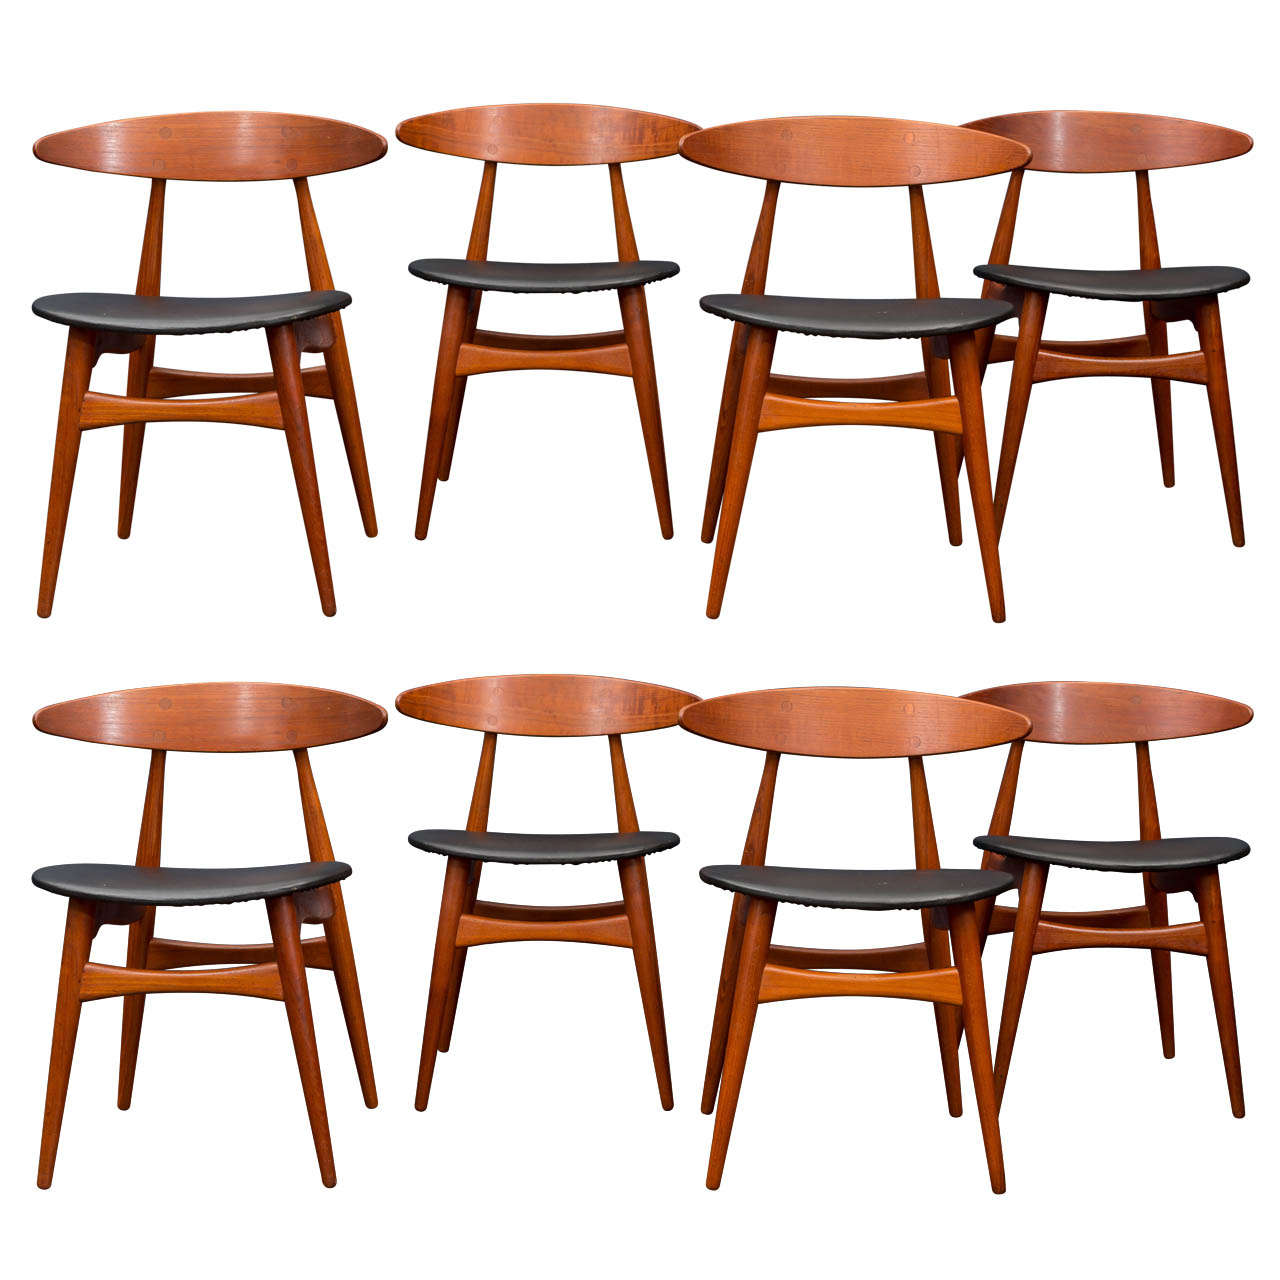 Hans wegner ch33 dining chairs for sale at 1stdibs for Wegner dining chair